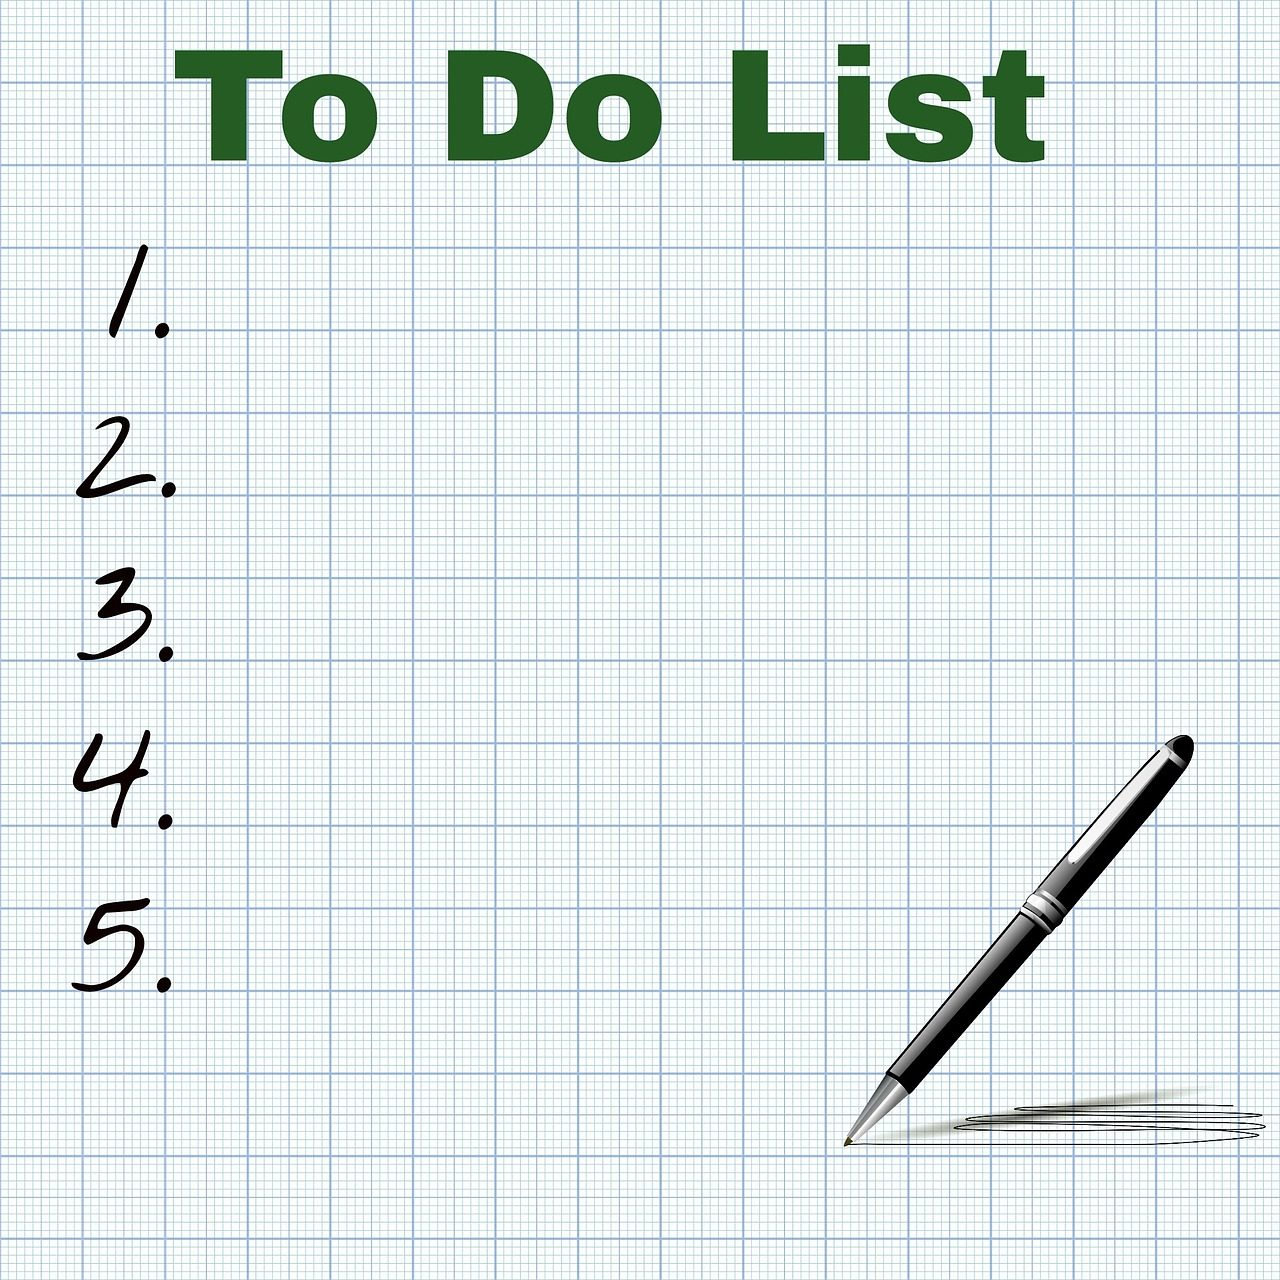 to-do-list-749304_1280-1280x1280.jpg